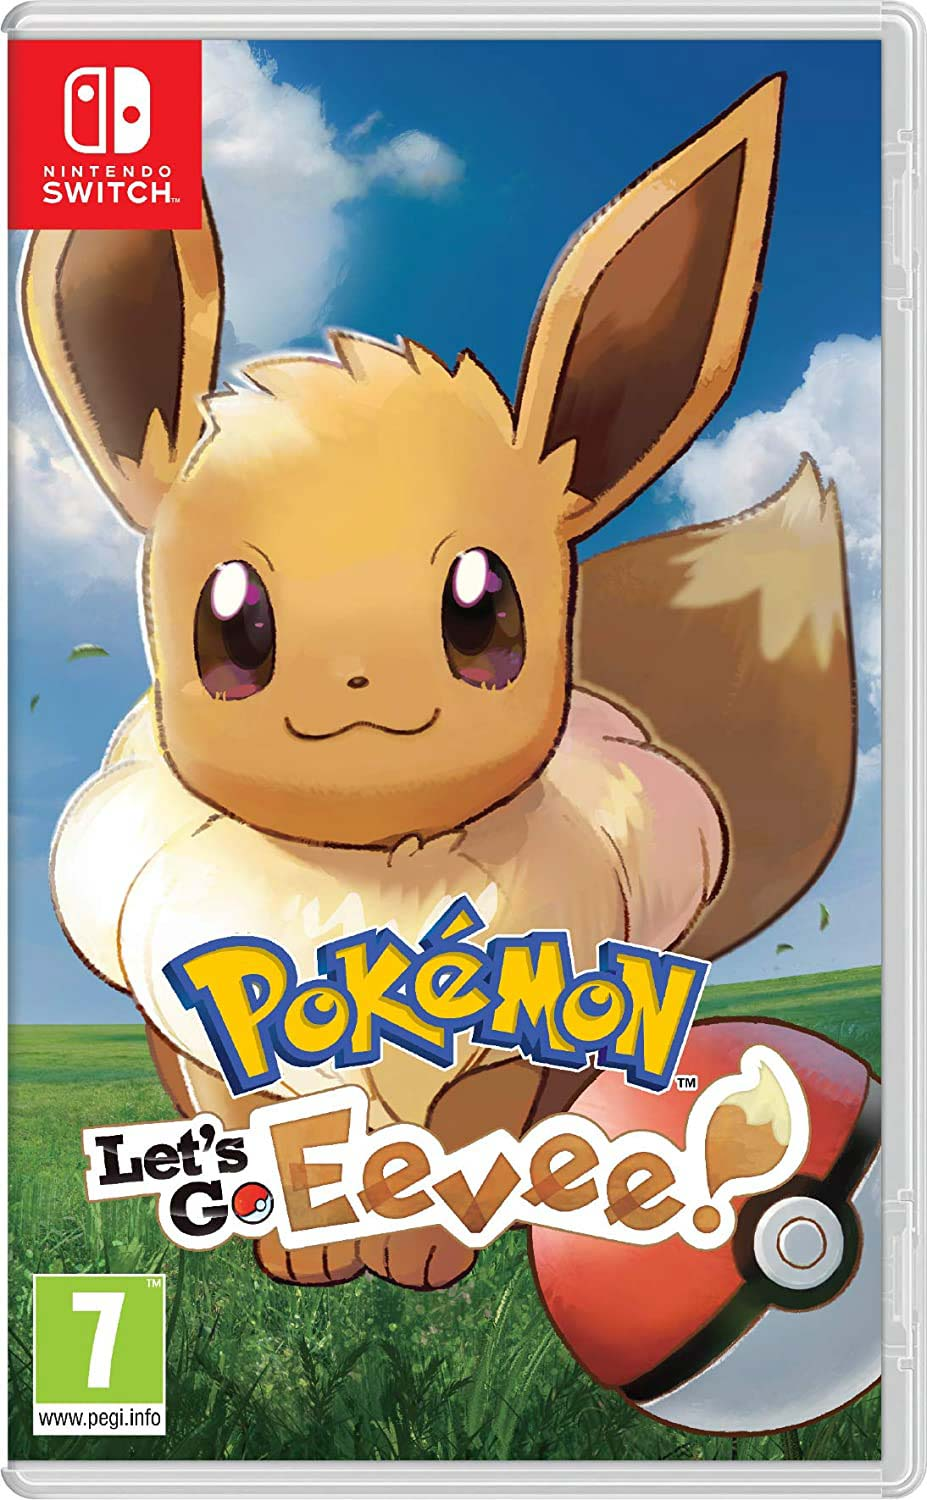 Cover of Let's Go Eevee Nintendo Switch game